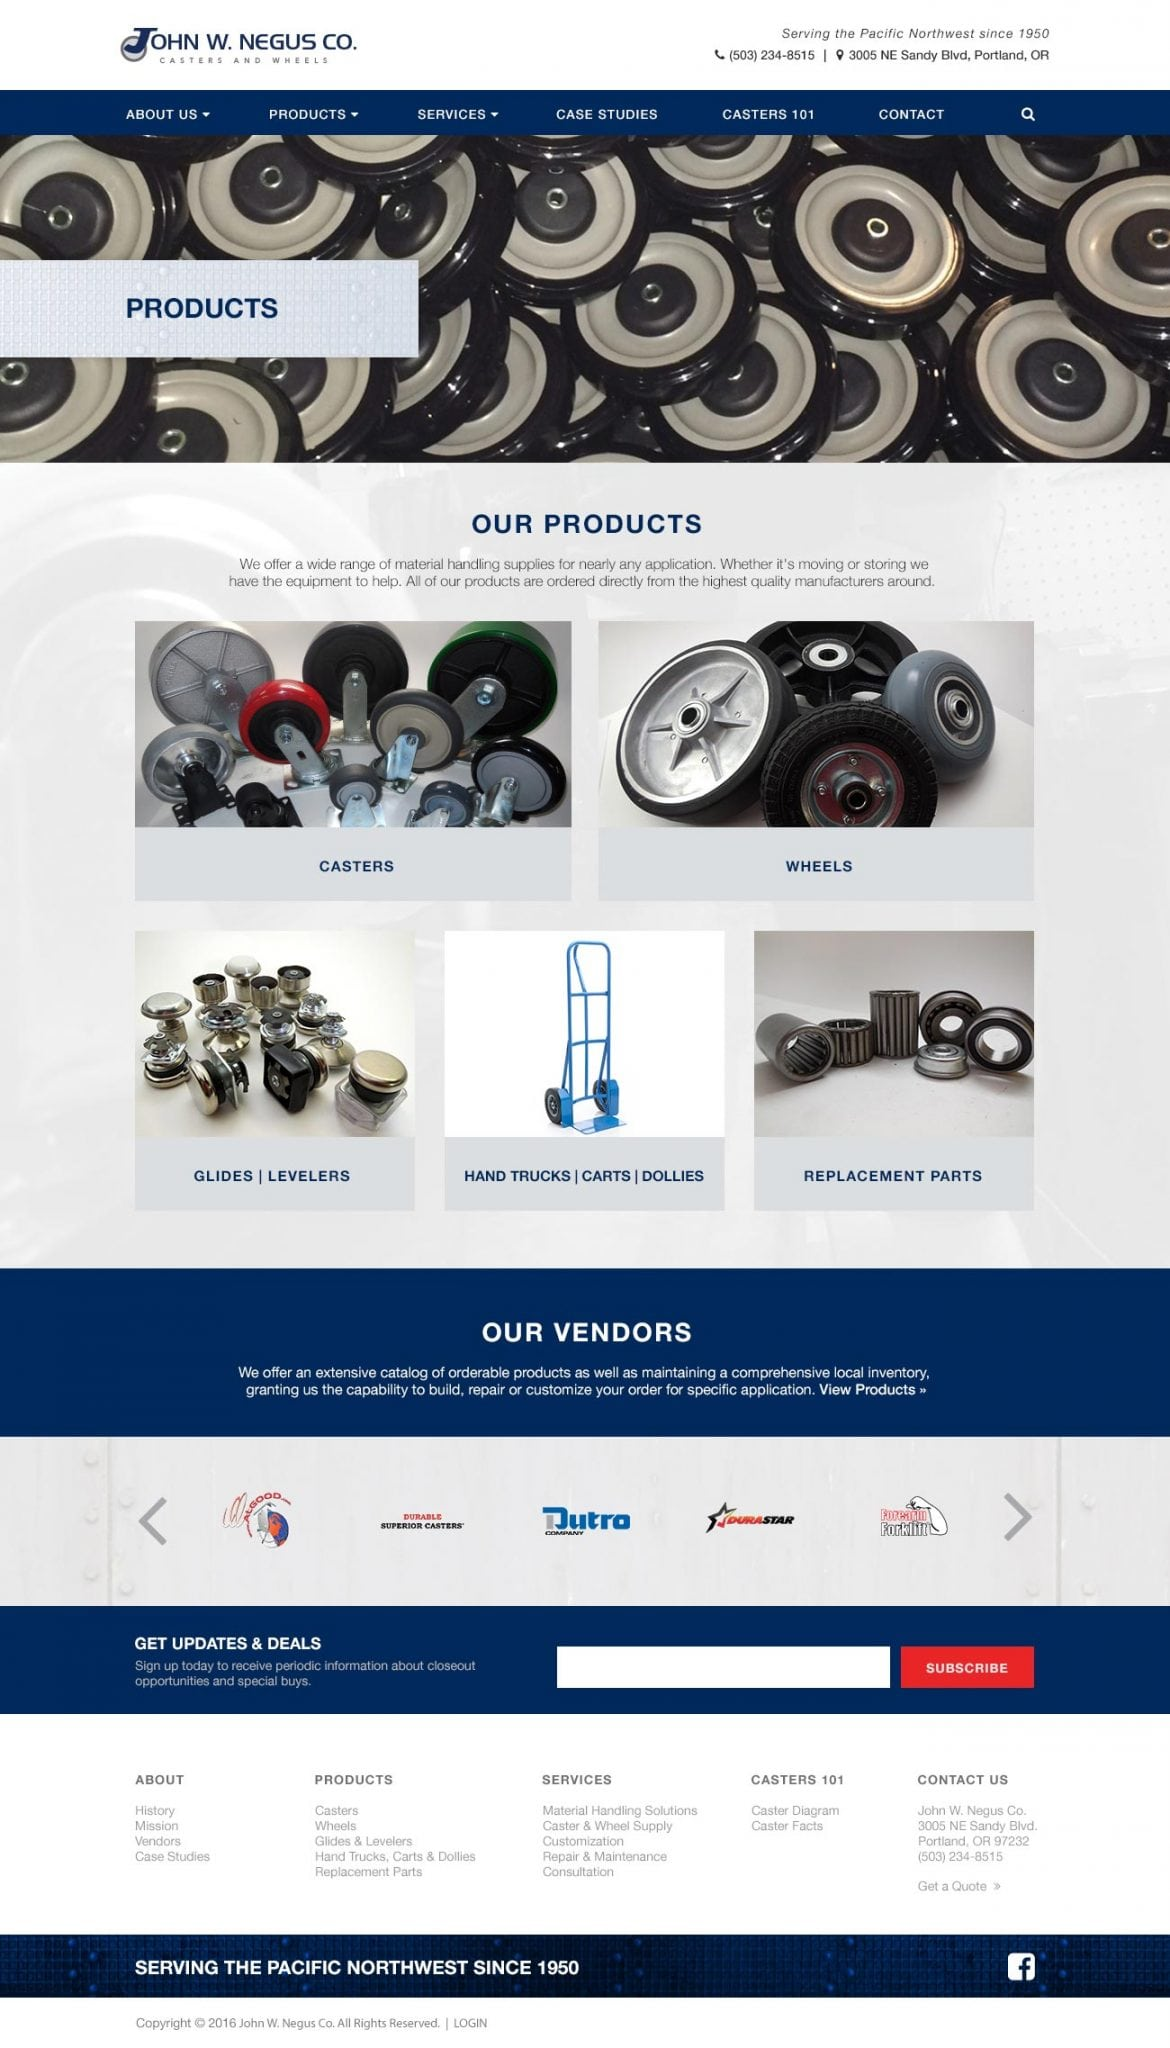 jwnc-web-products